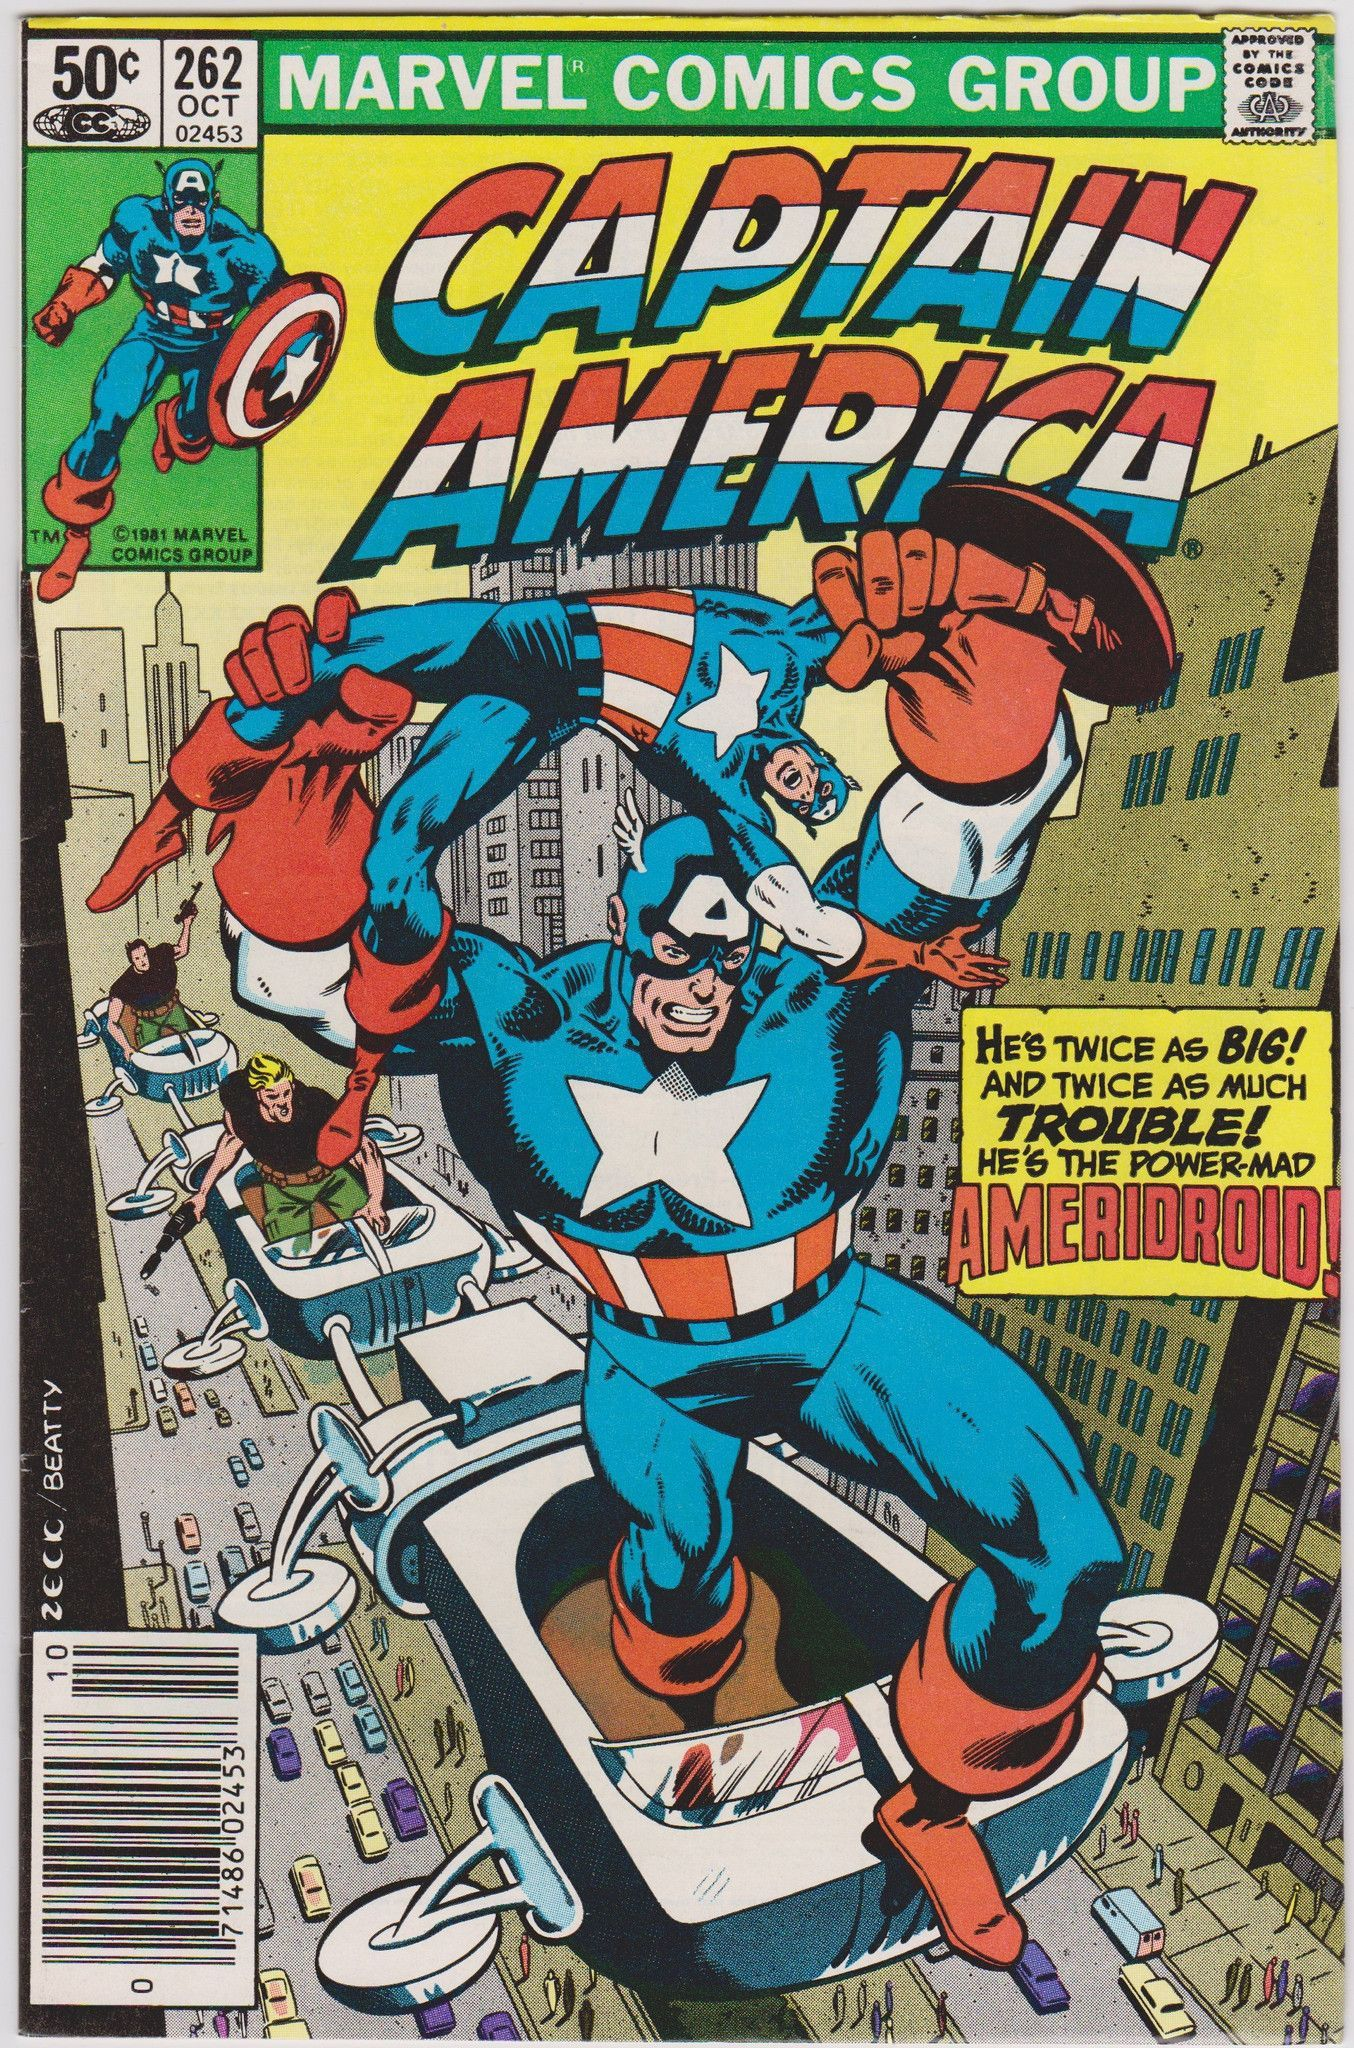 marvel comics 02453